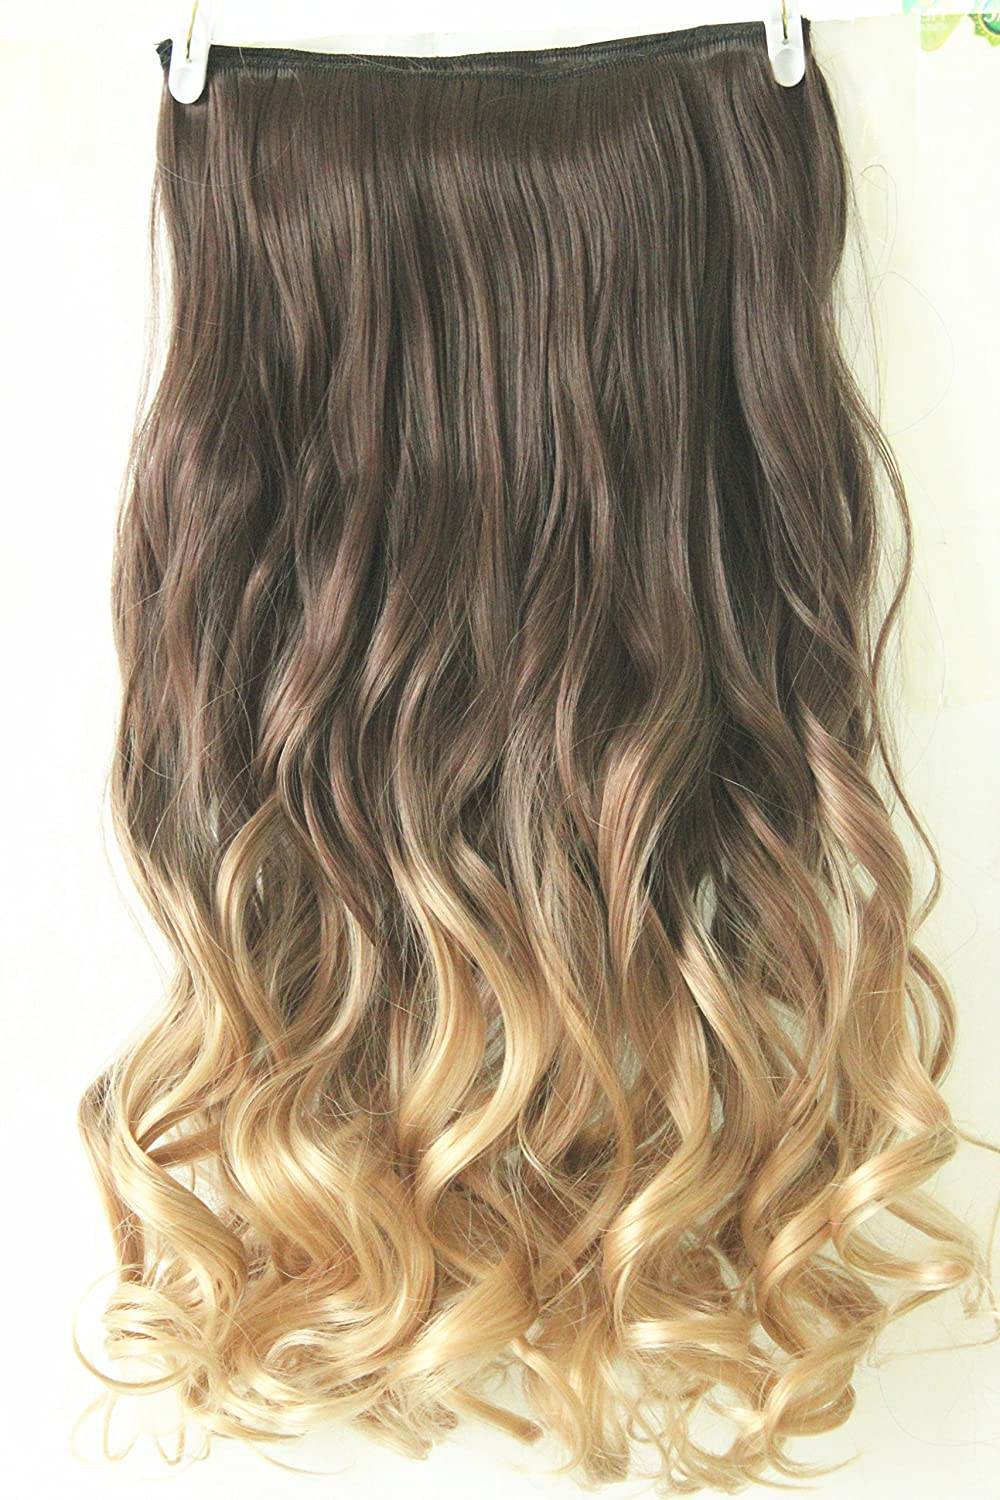 22 full head clip in hair extensions ombre wavy curly dip dye 6 22 full head clip in hair extensions ombre wavy curly dip dye 6 pcs dark brown to sandy blonde amazon beauty urmus Images